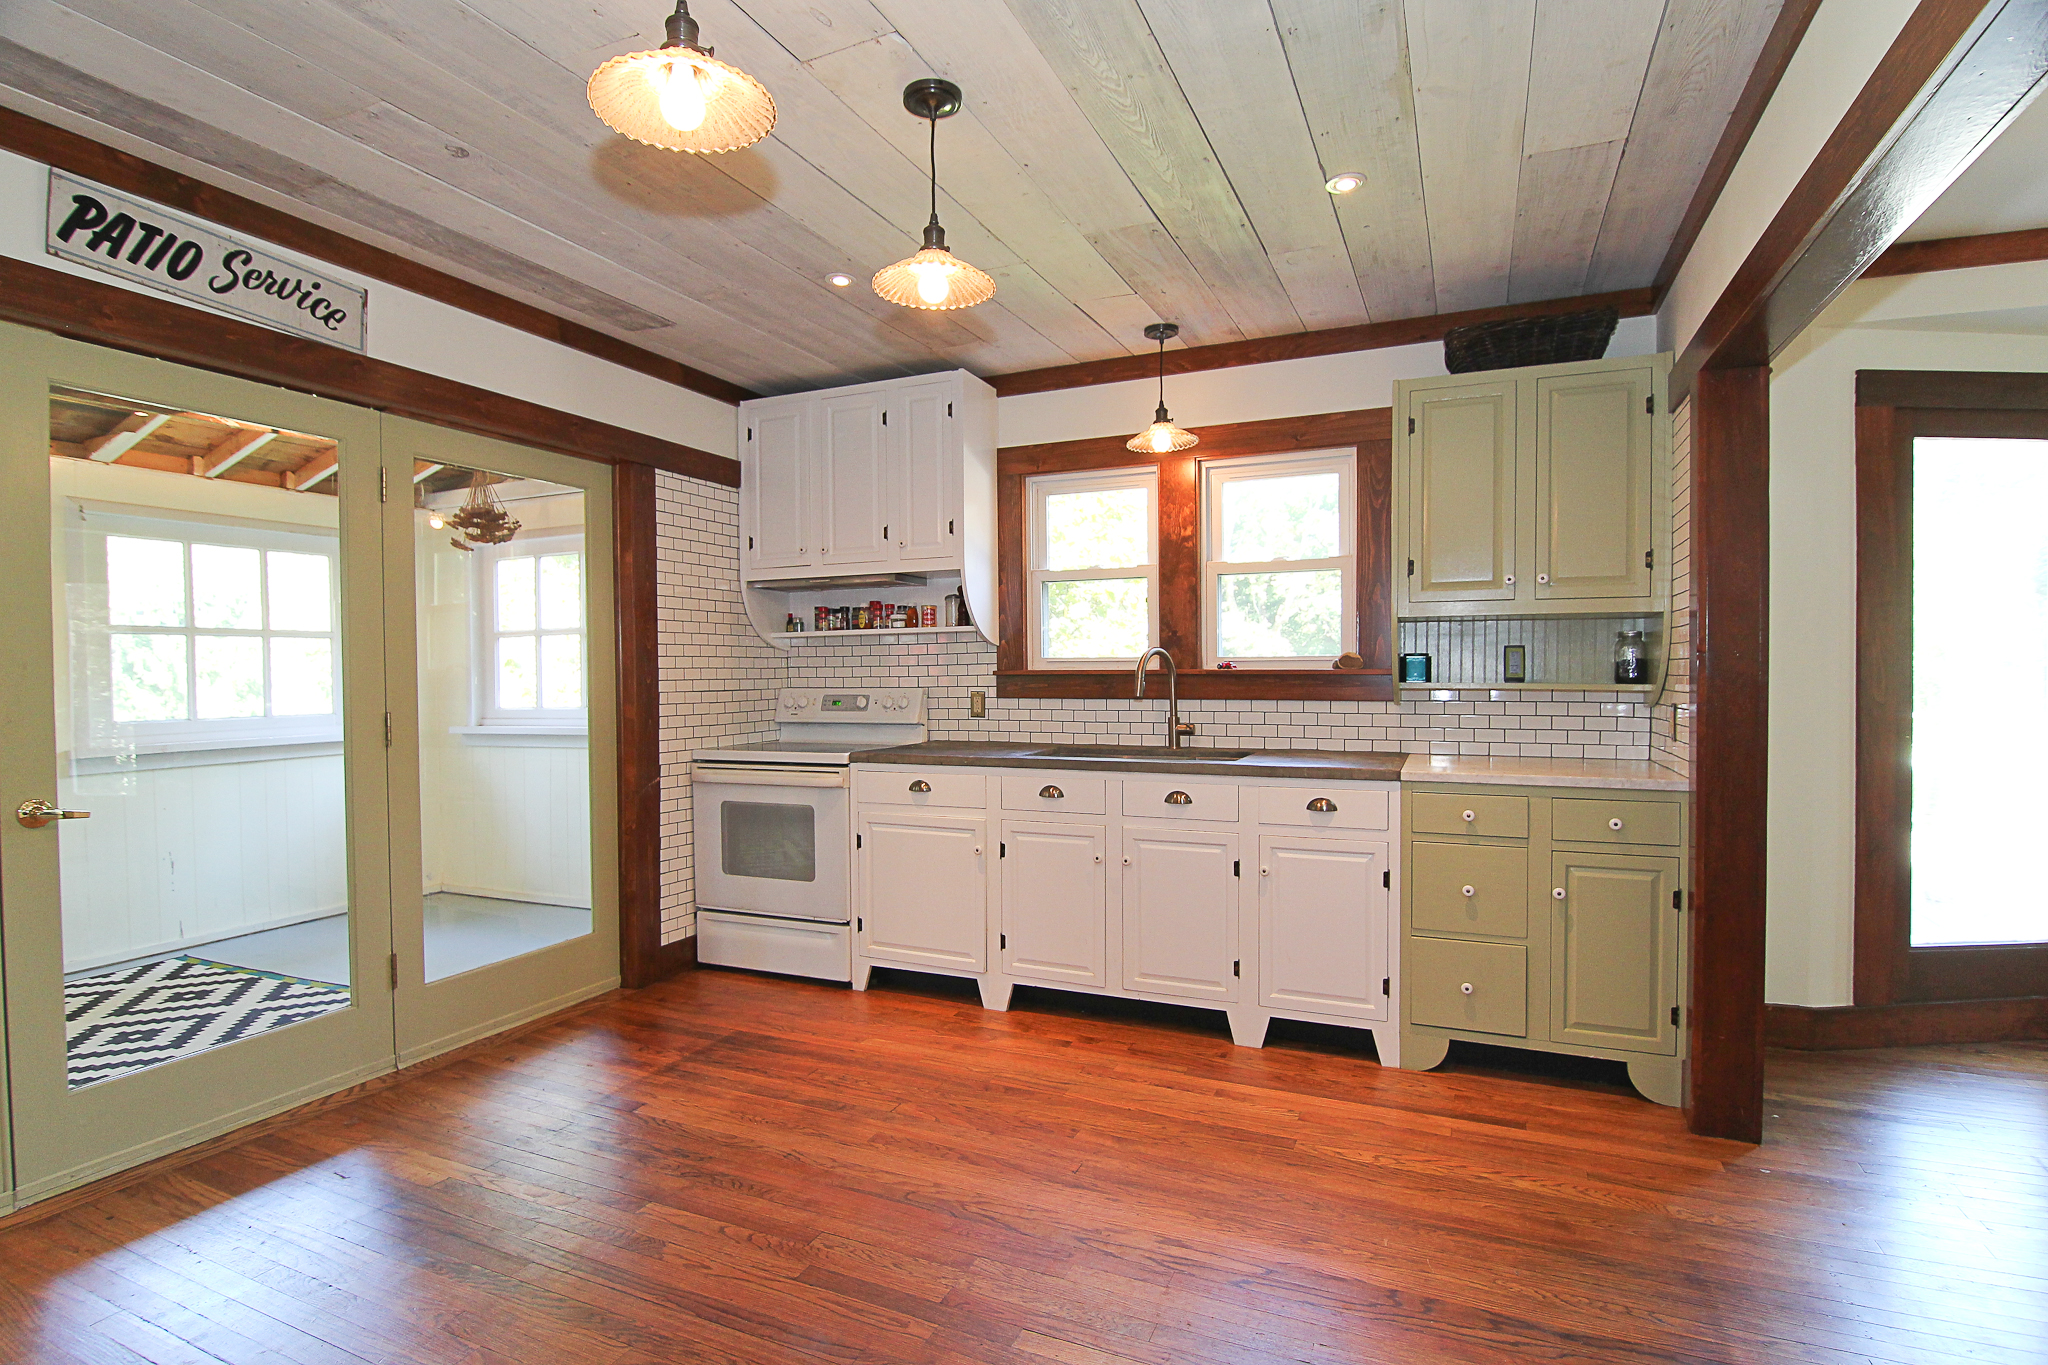 Does this kitchen look new? Airy Kitchens painted existing cabinets, refinished existing floors, used reclaimed wood for molding and ceilings, and purchased the glass doors at a salvage shop.